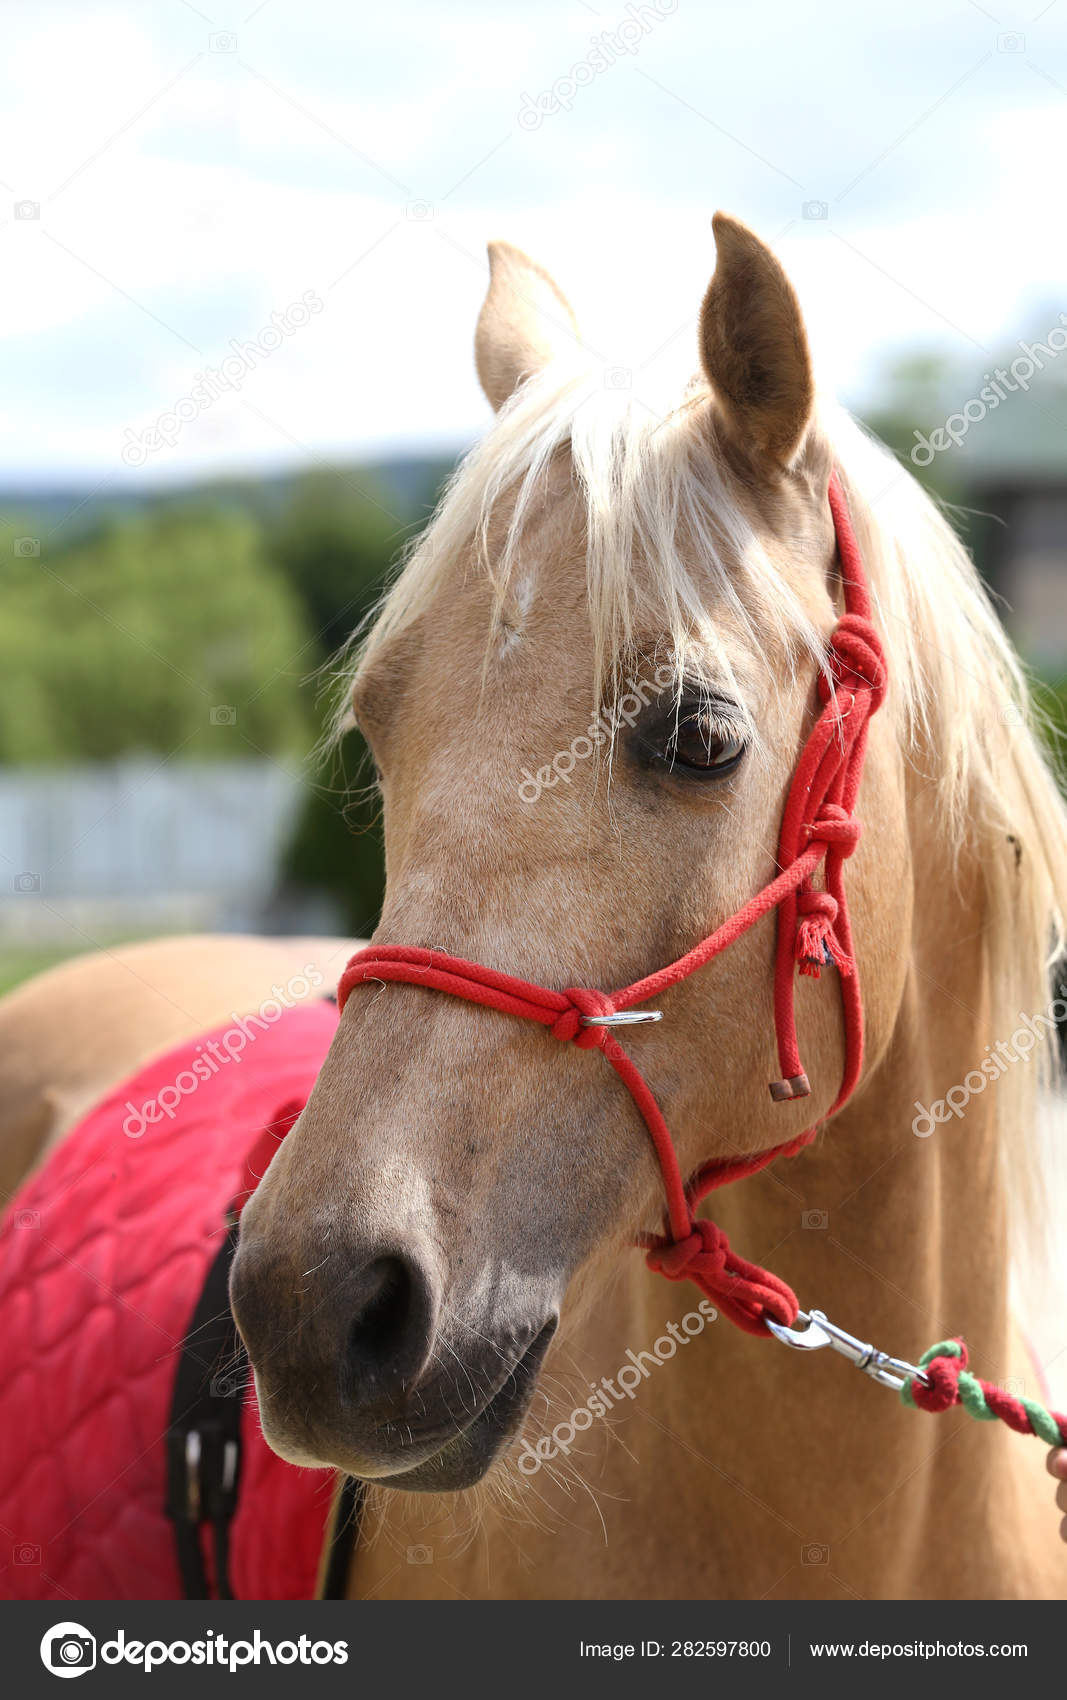 Beautiful Horse Head Closeup With Reins During Training Stock Photo C Accept001 282597800